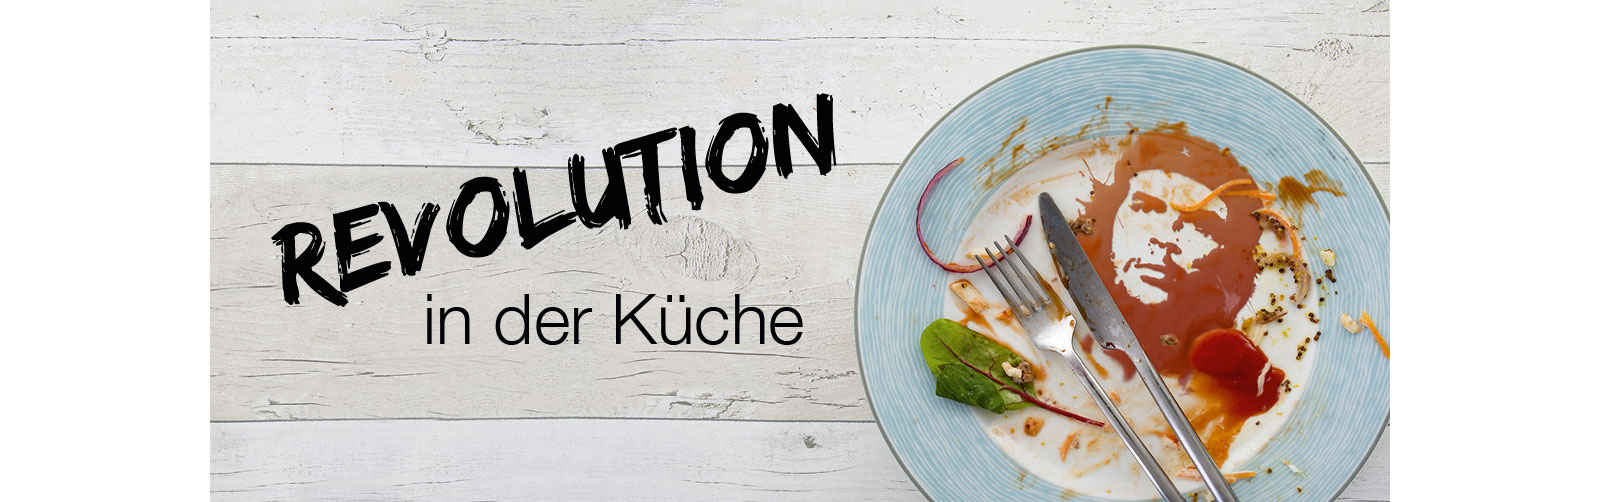 Revolution-in-der-Küche7.jpg